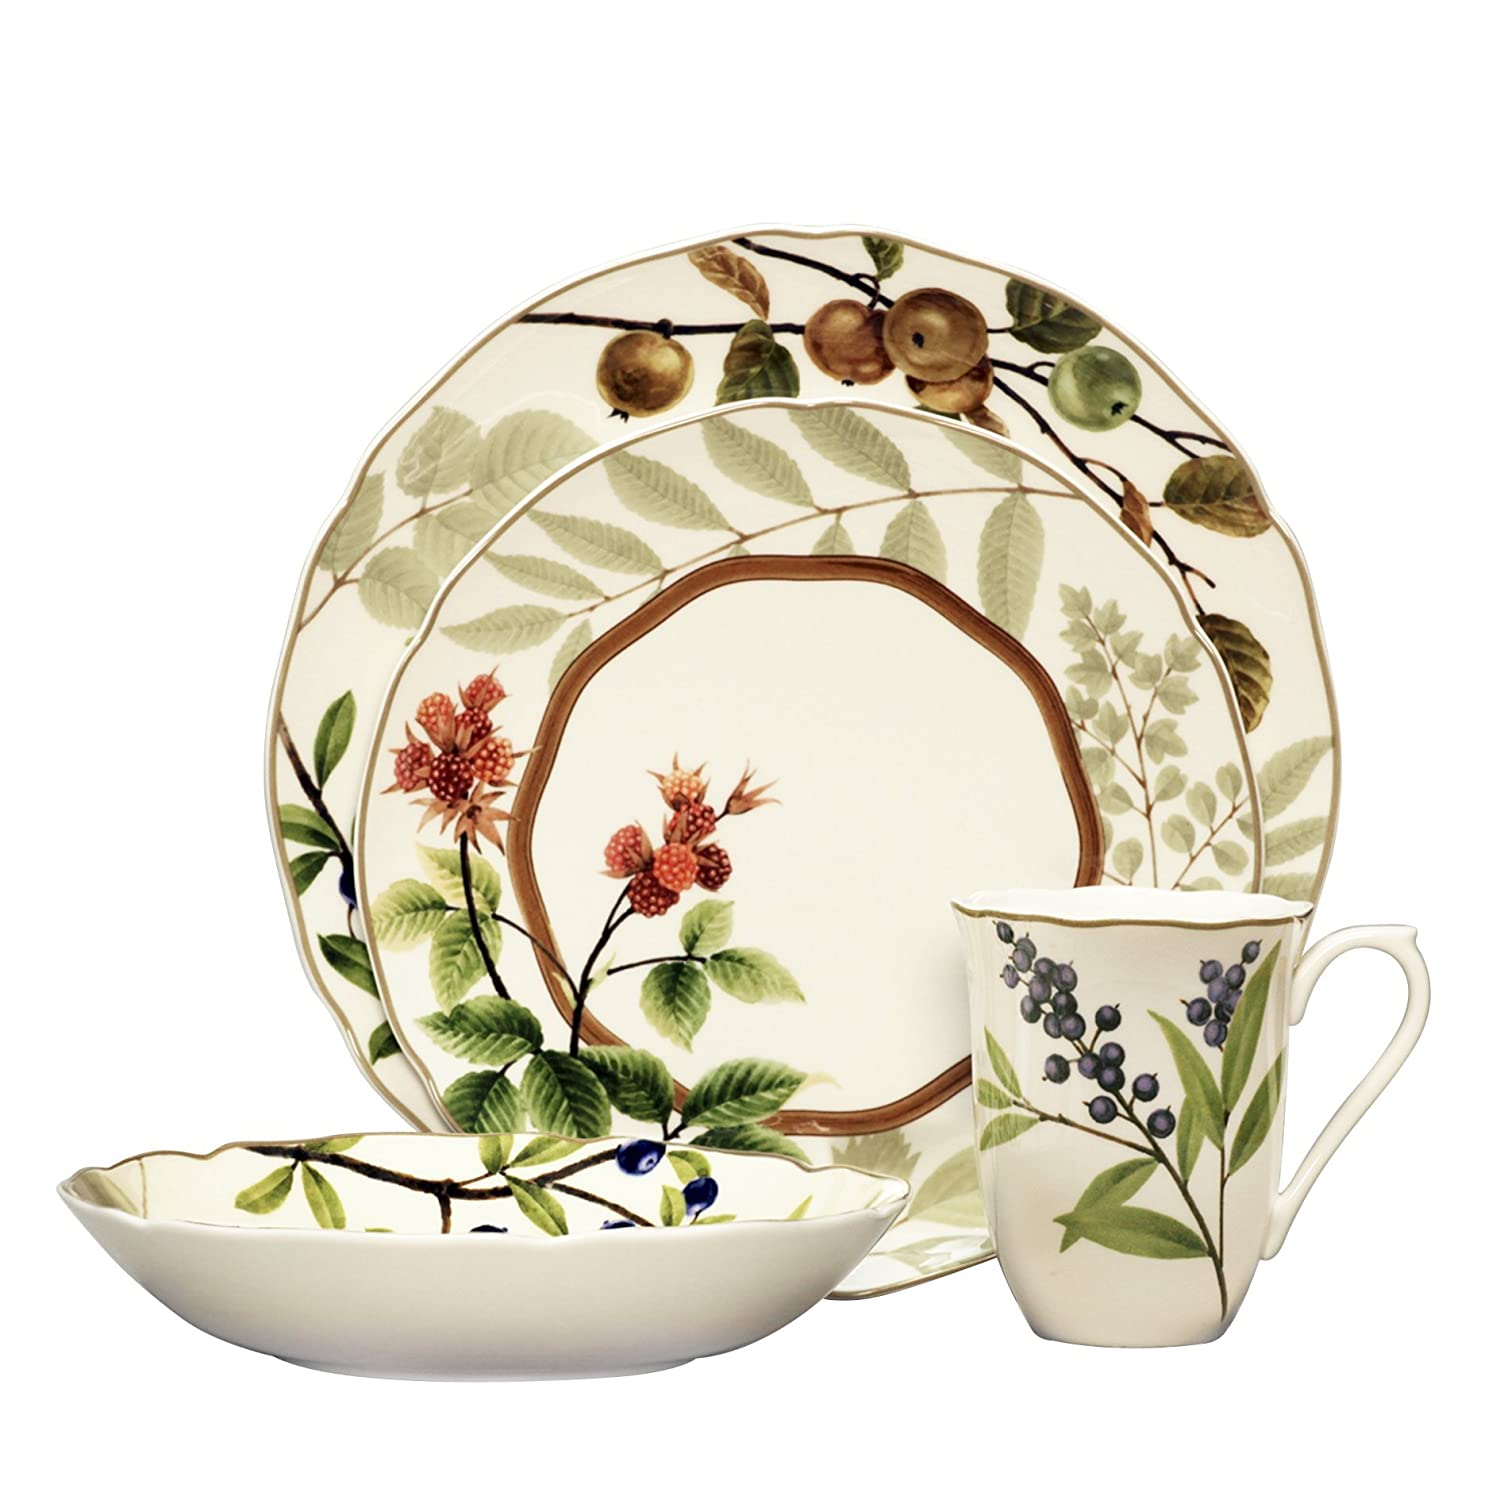 Amazon.com | Noritake Berries and Brambles 4-Piece Place Setting Dinnerware Sets Dinnerware Sets  sc 1 st  Amazon.com & Amazon.com | Noritake Berries and Brambles 4-Piece Place Setting ...